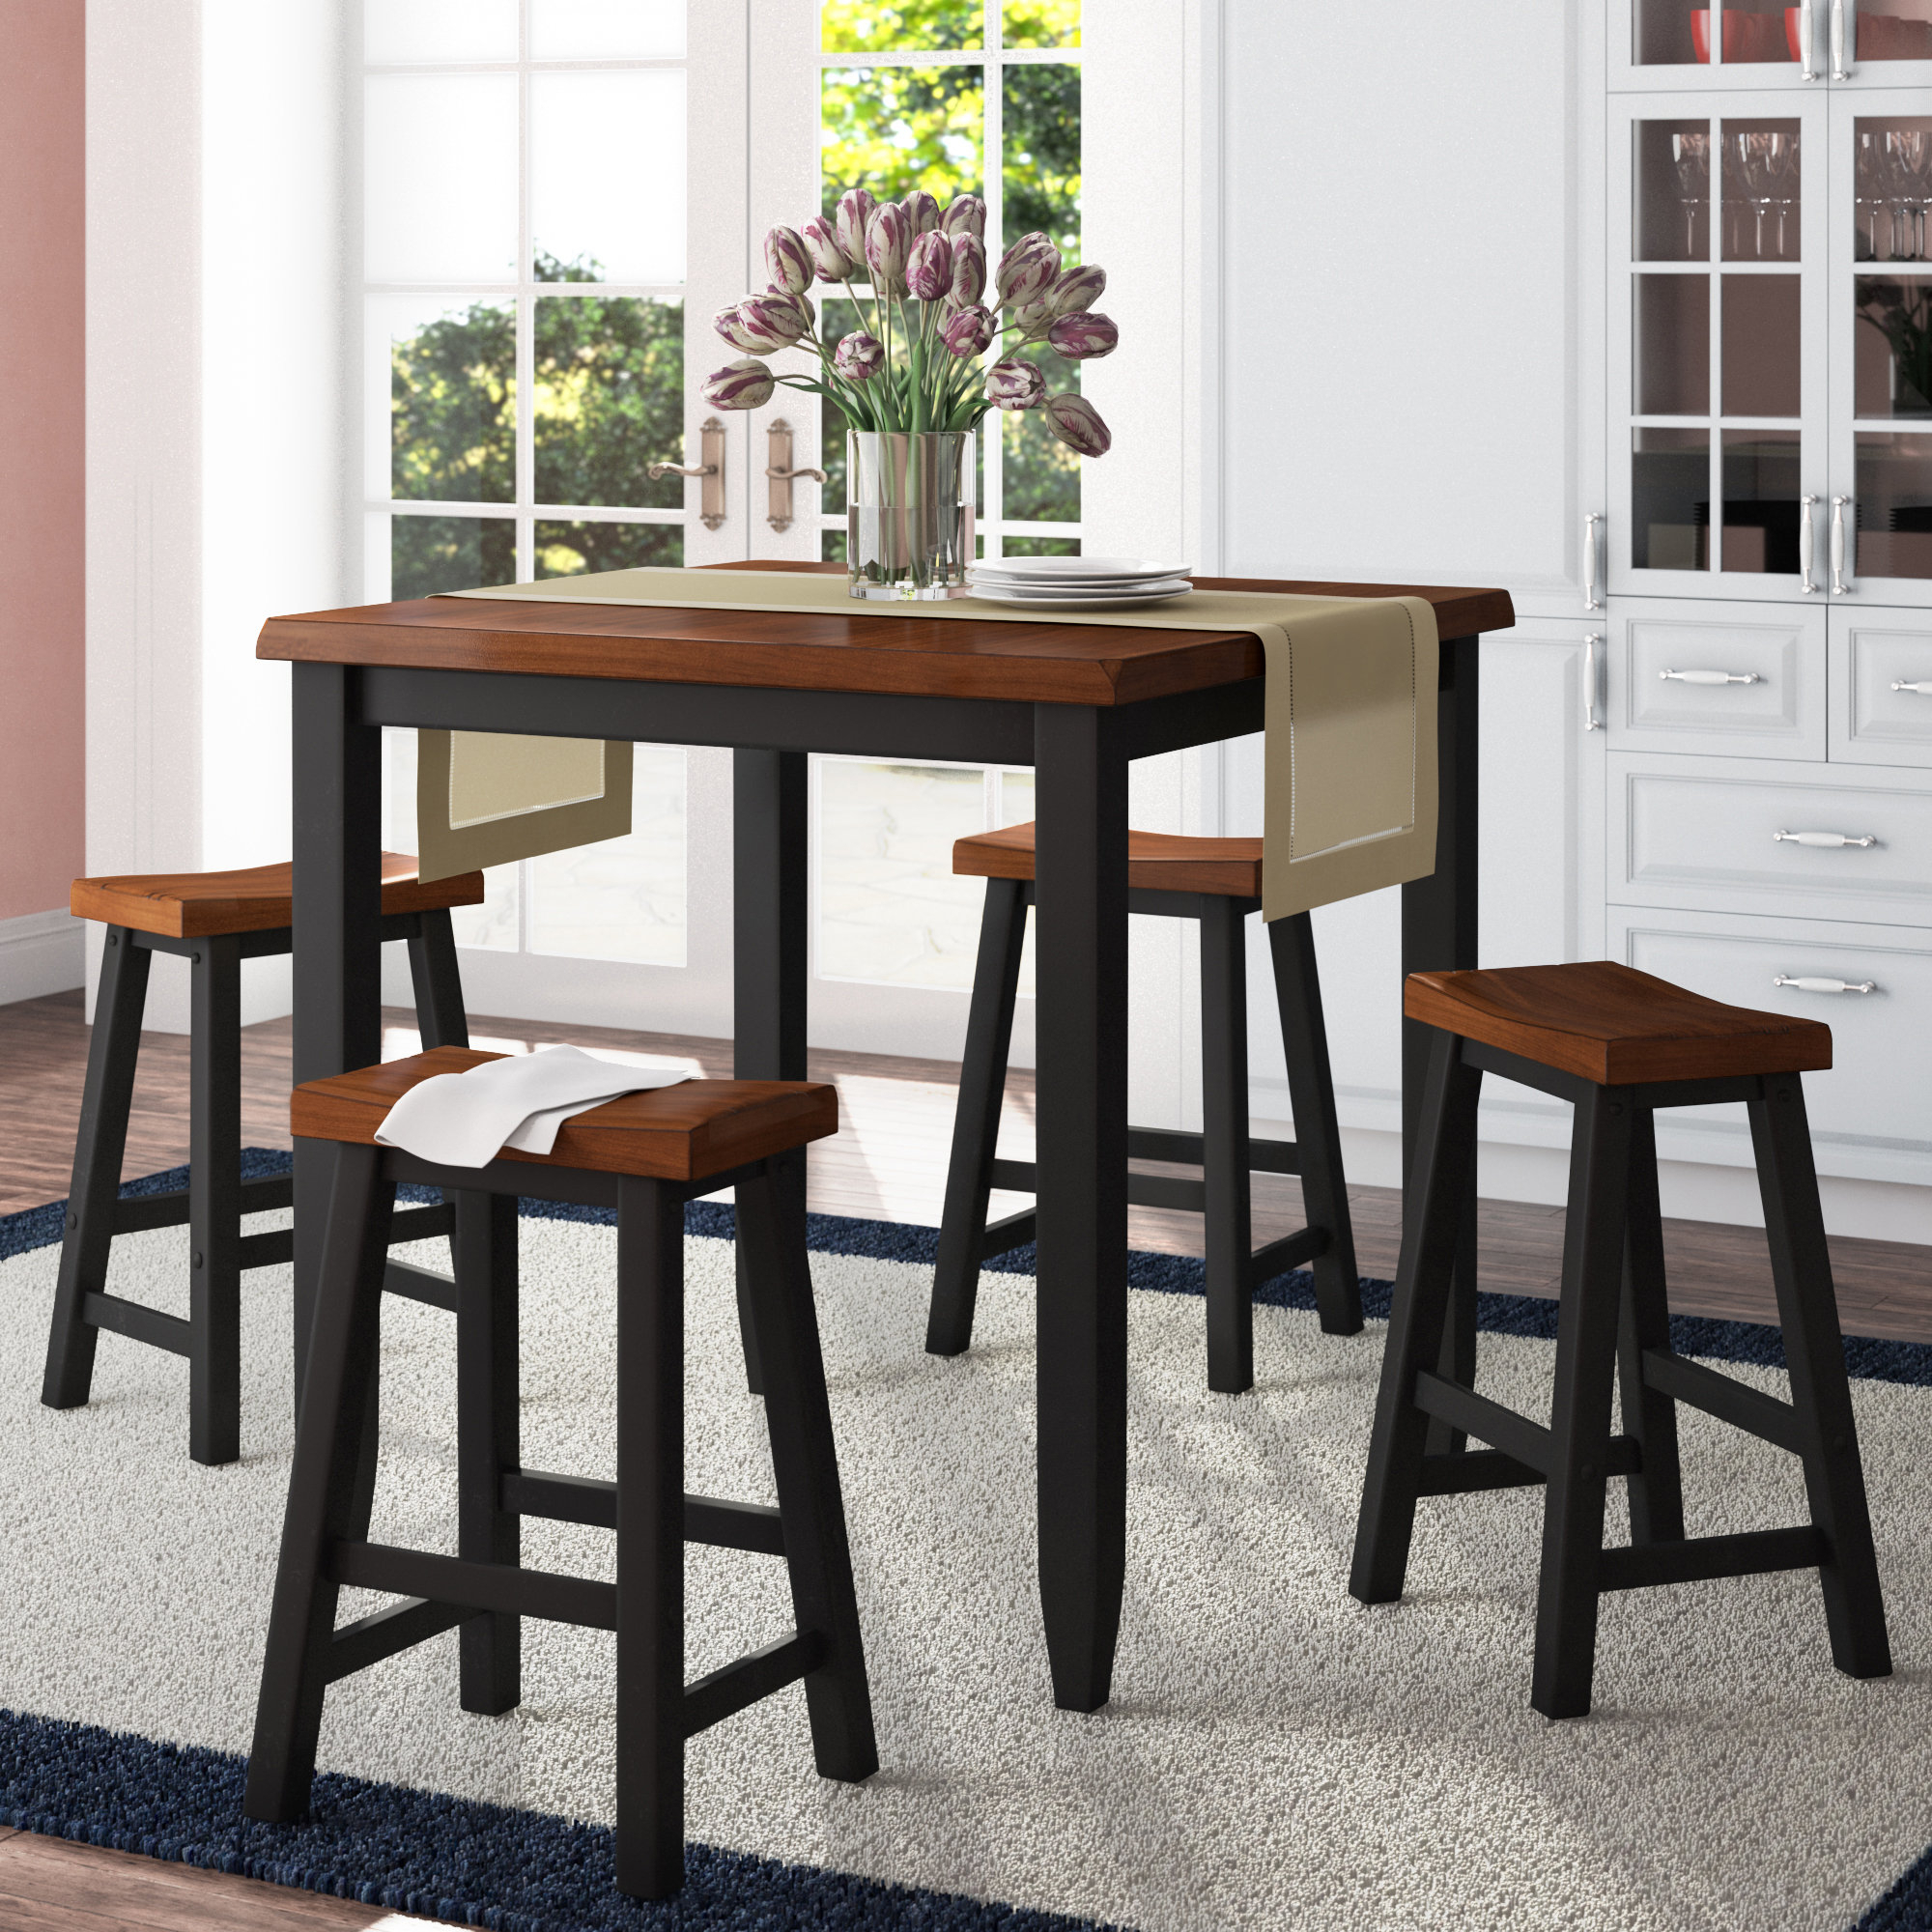 Latest Darby Home Co Simmons Casegoods Ruggerio 5 Piece Counter Height Pub For Kerley 4 Piece Dining Sets (View 10 of 25)